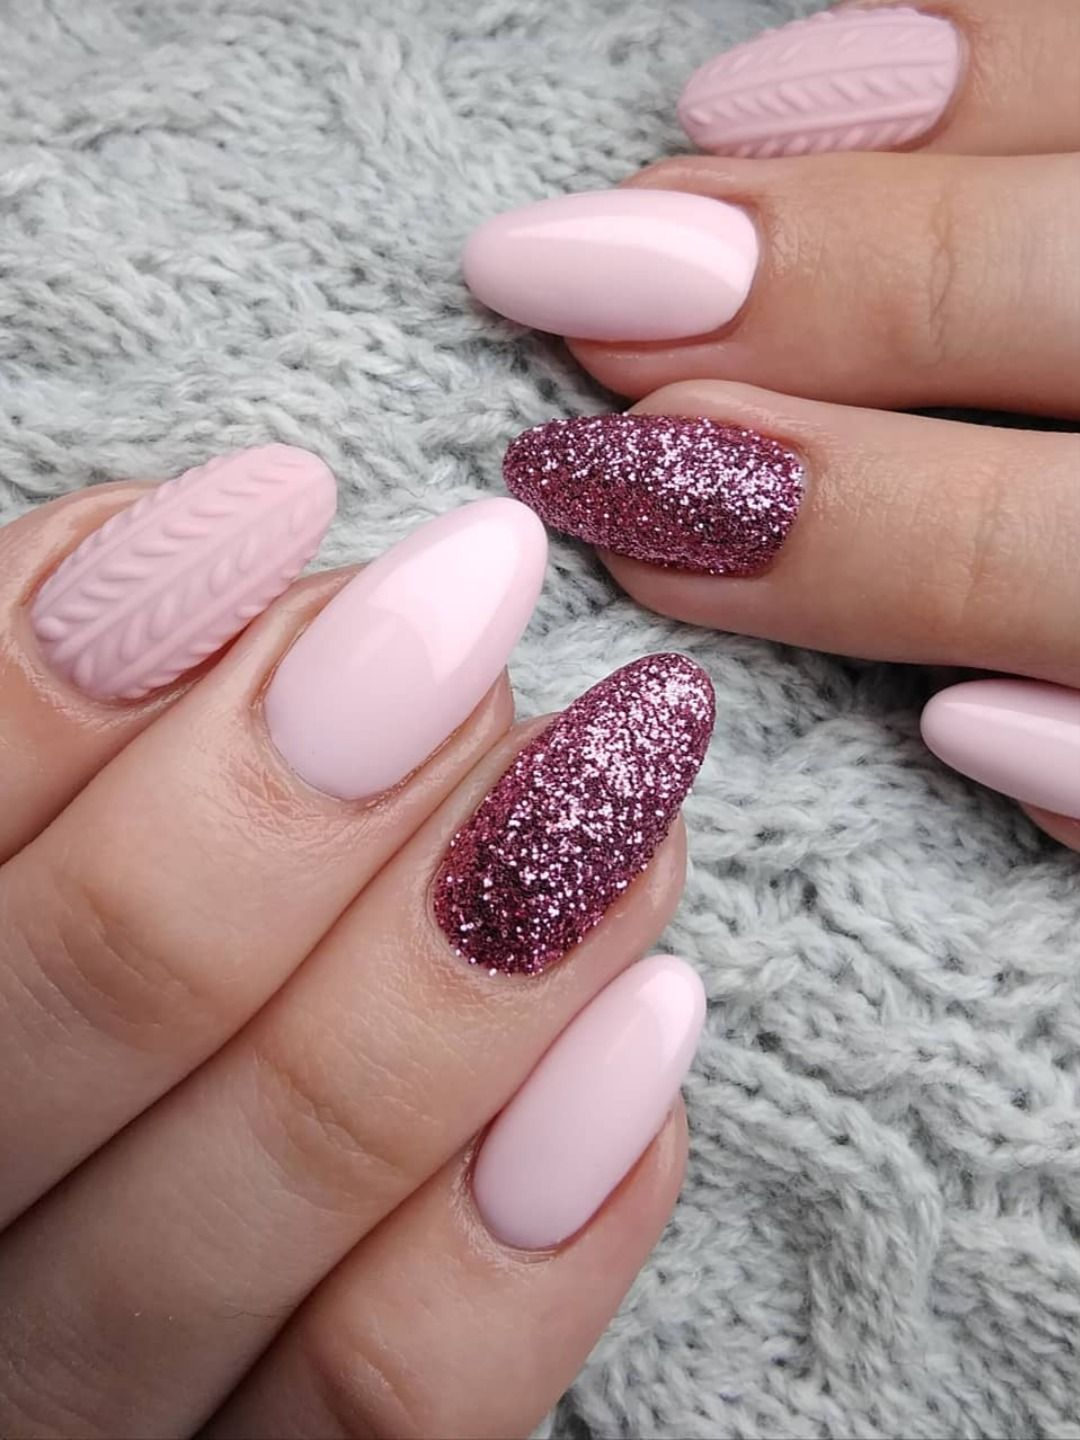 Almond Baby Cute Ideas Nails Pink Cute Baby Pink Almond Nails Ideas In 2019 Gorgeous Baby Pink A Pink Nails Pink Acrylic Nails Shiny Nails Designs